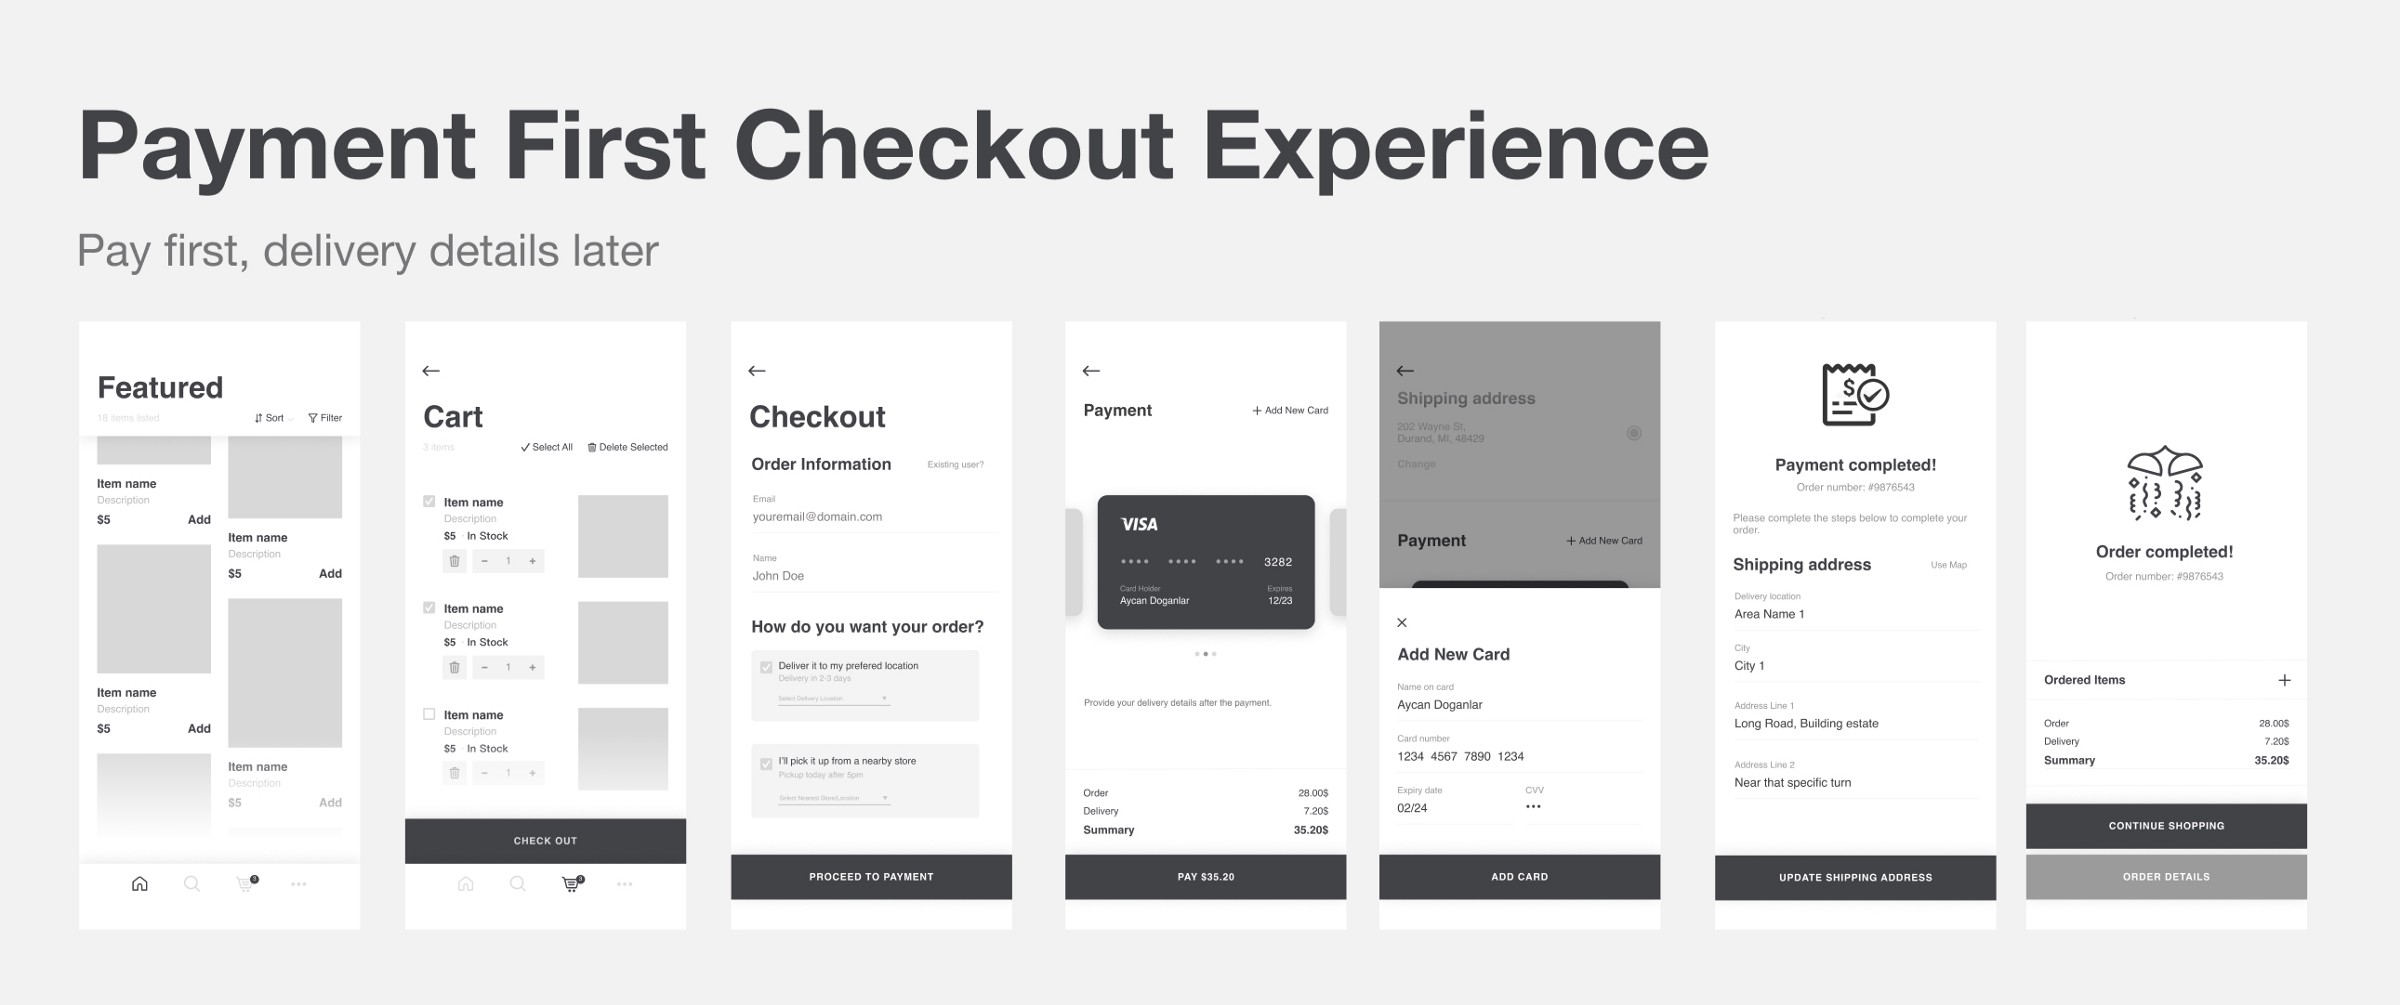 Payment-first checkout experience — a UX exploration 21